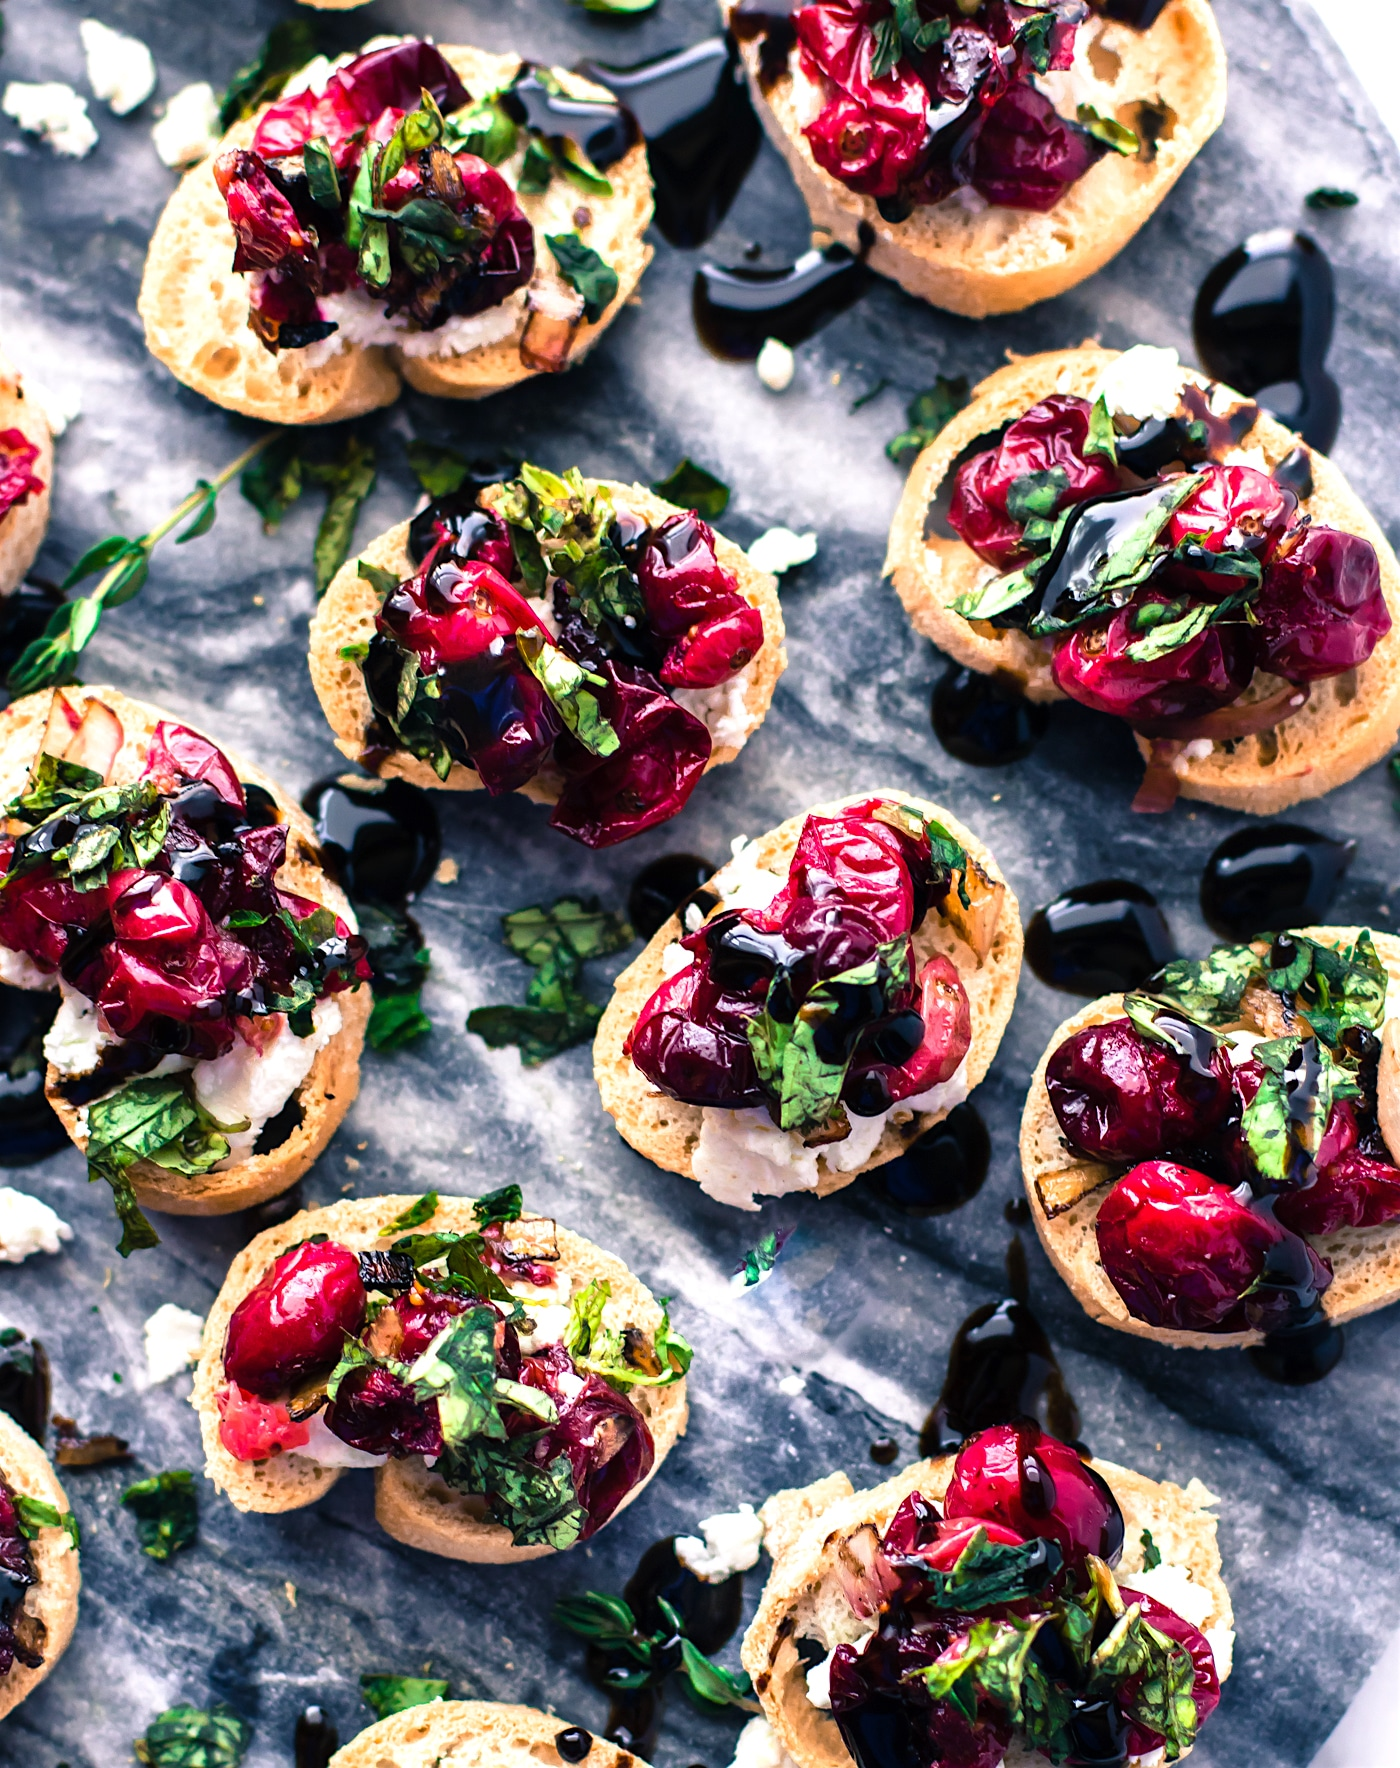 gluten free crostini recipe with goat cheese, cranberries and fresh herbs